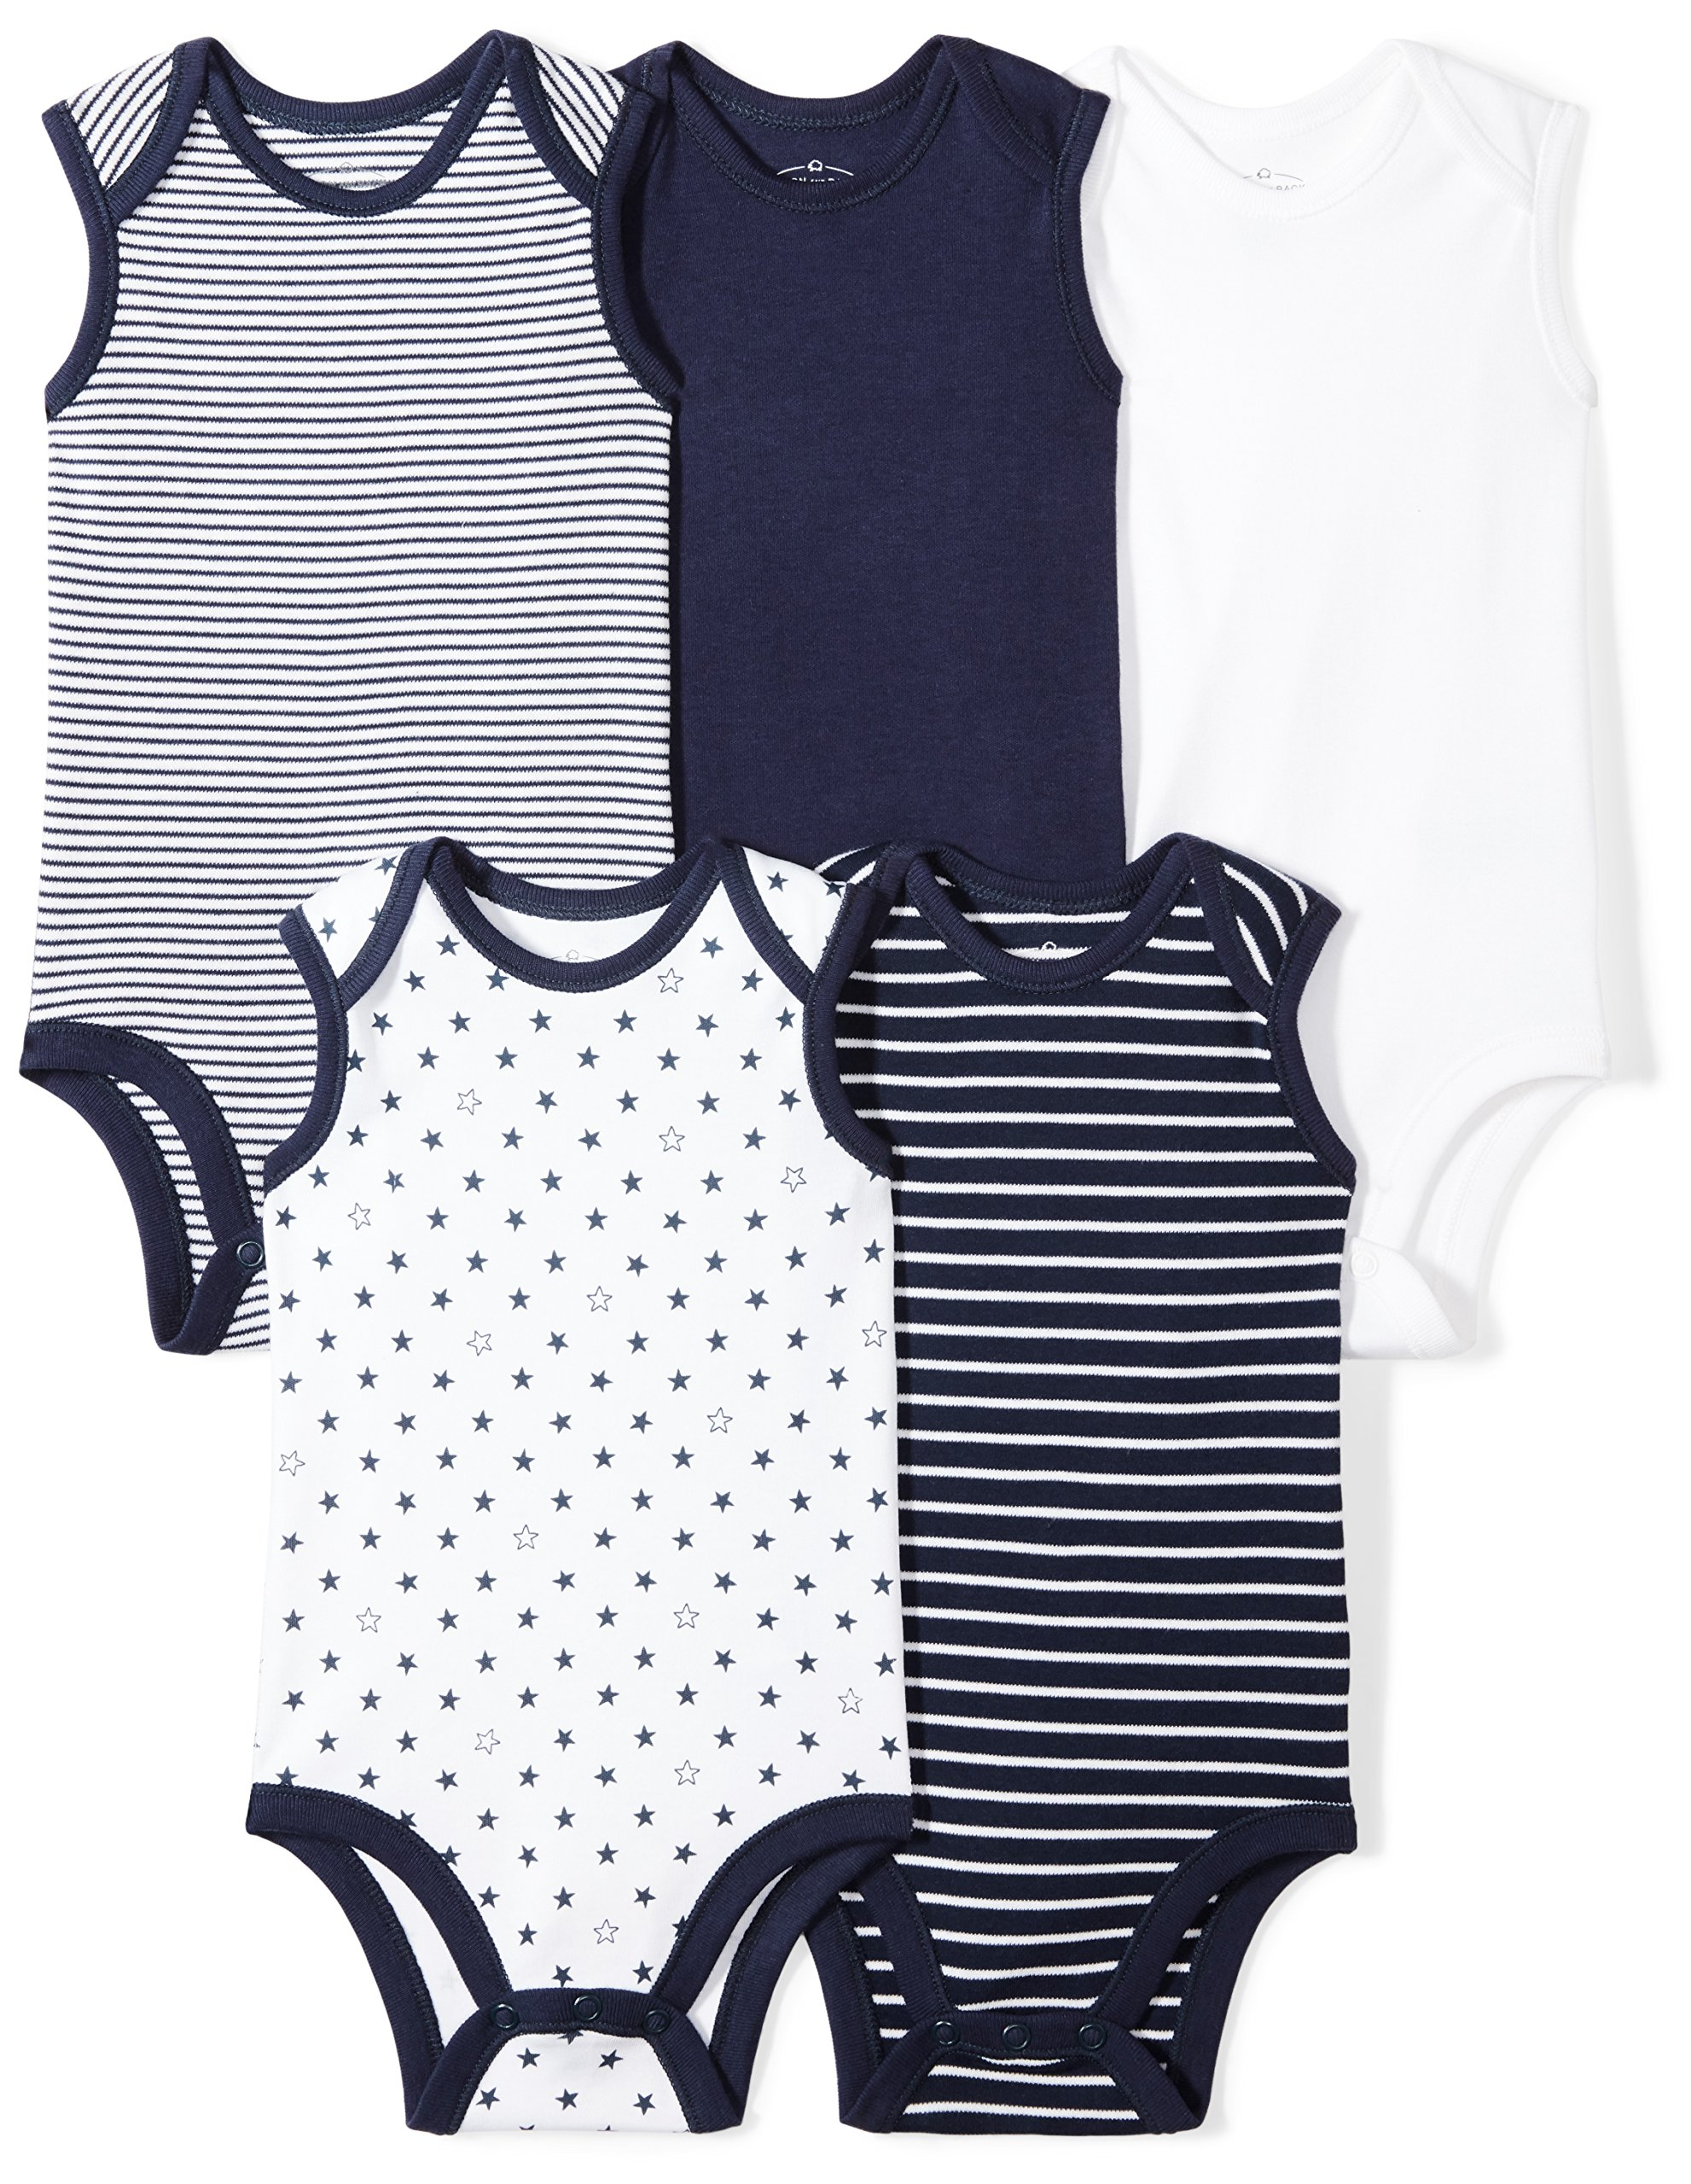 Moon and Back Baby Set of 5 Organic Sleeveless